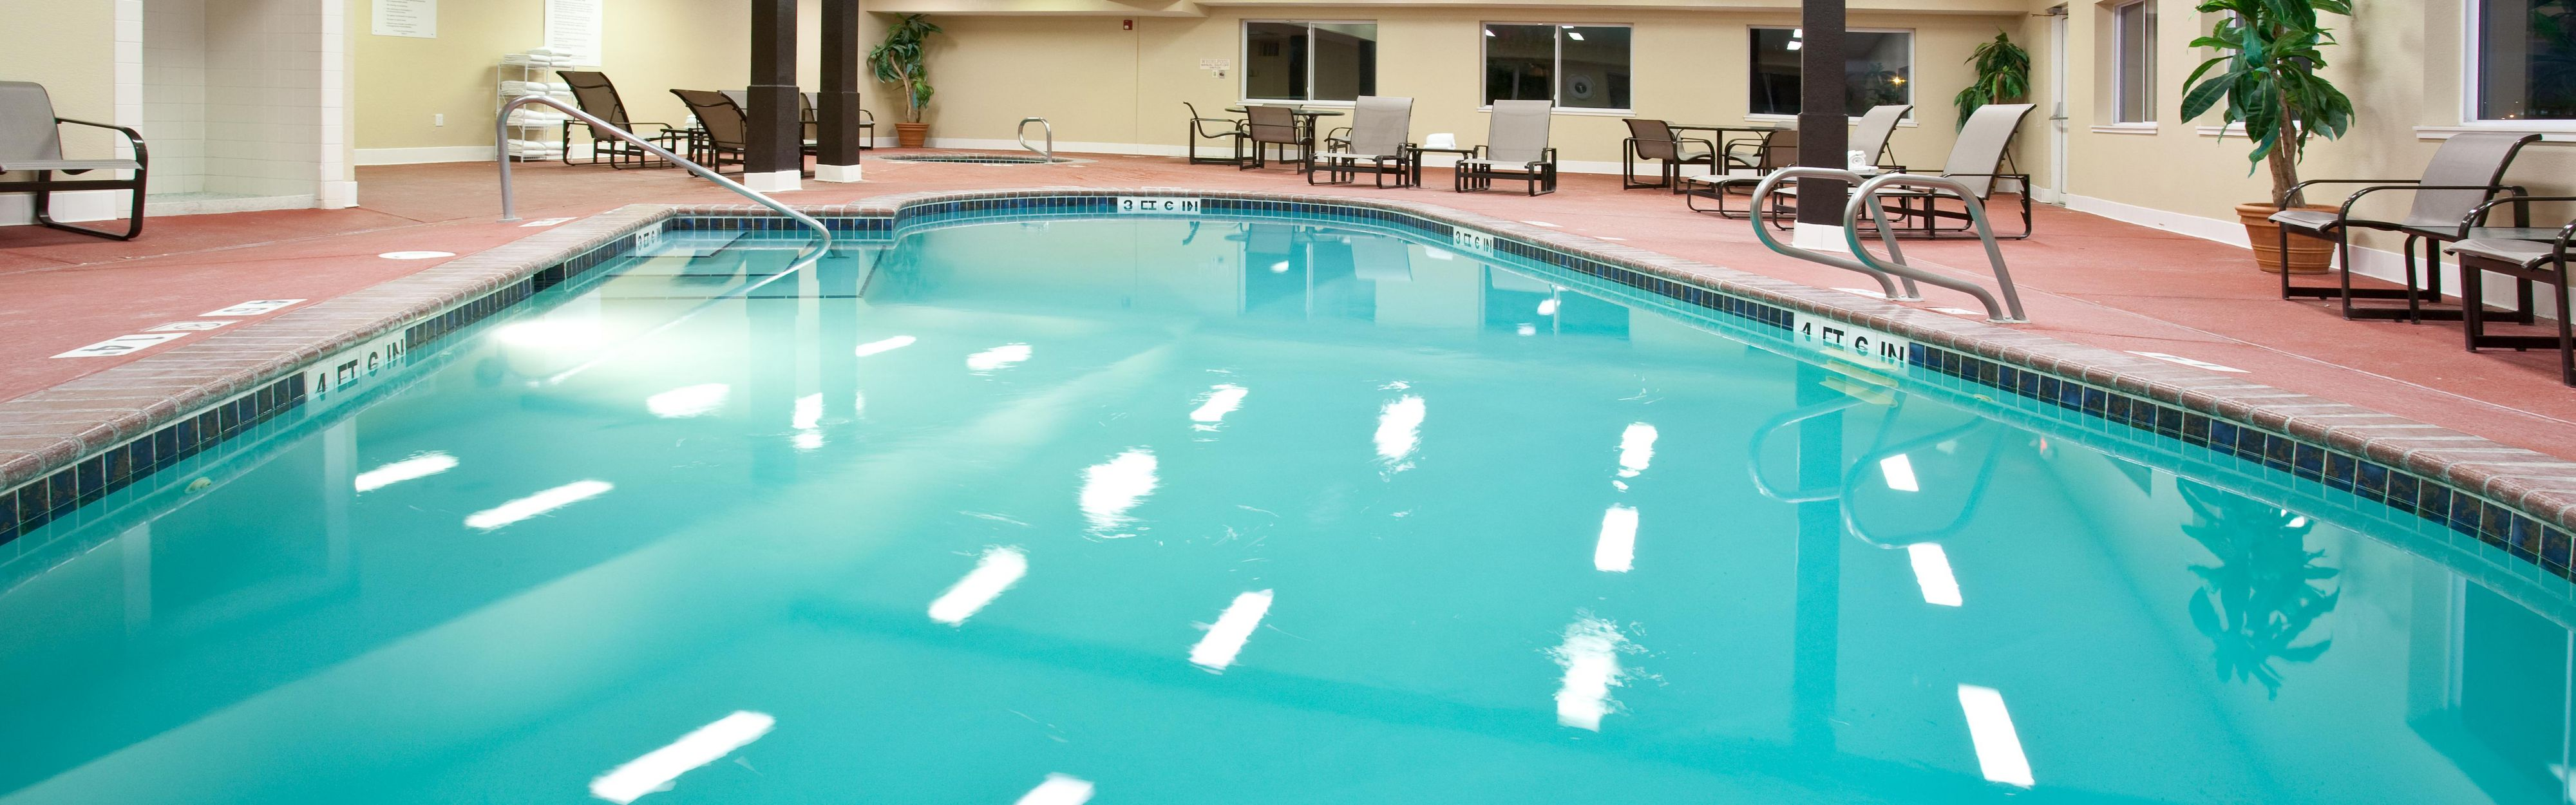 Holiday Inn Express & Suites Scottsbluff-Gering image 2